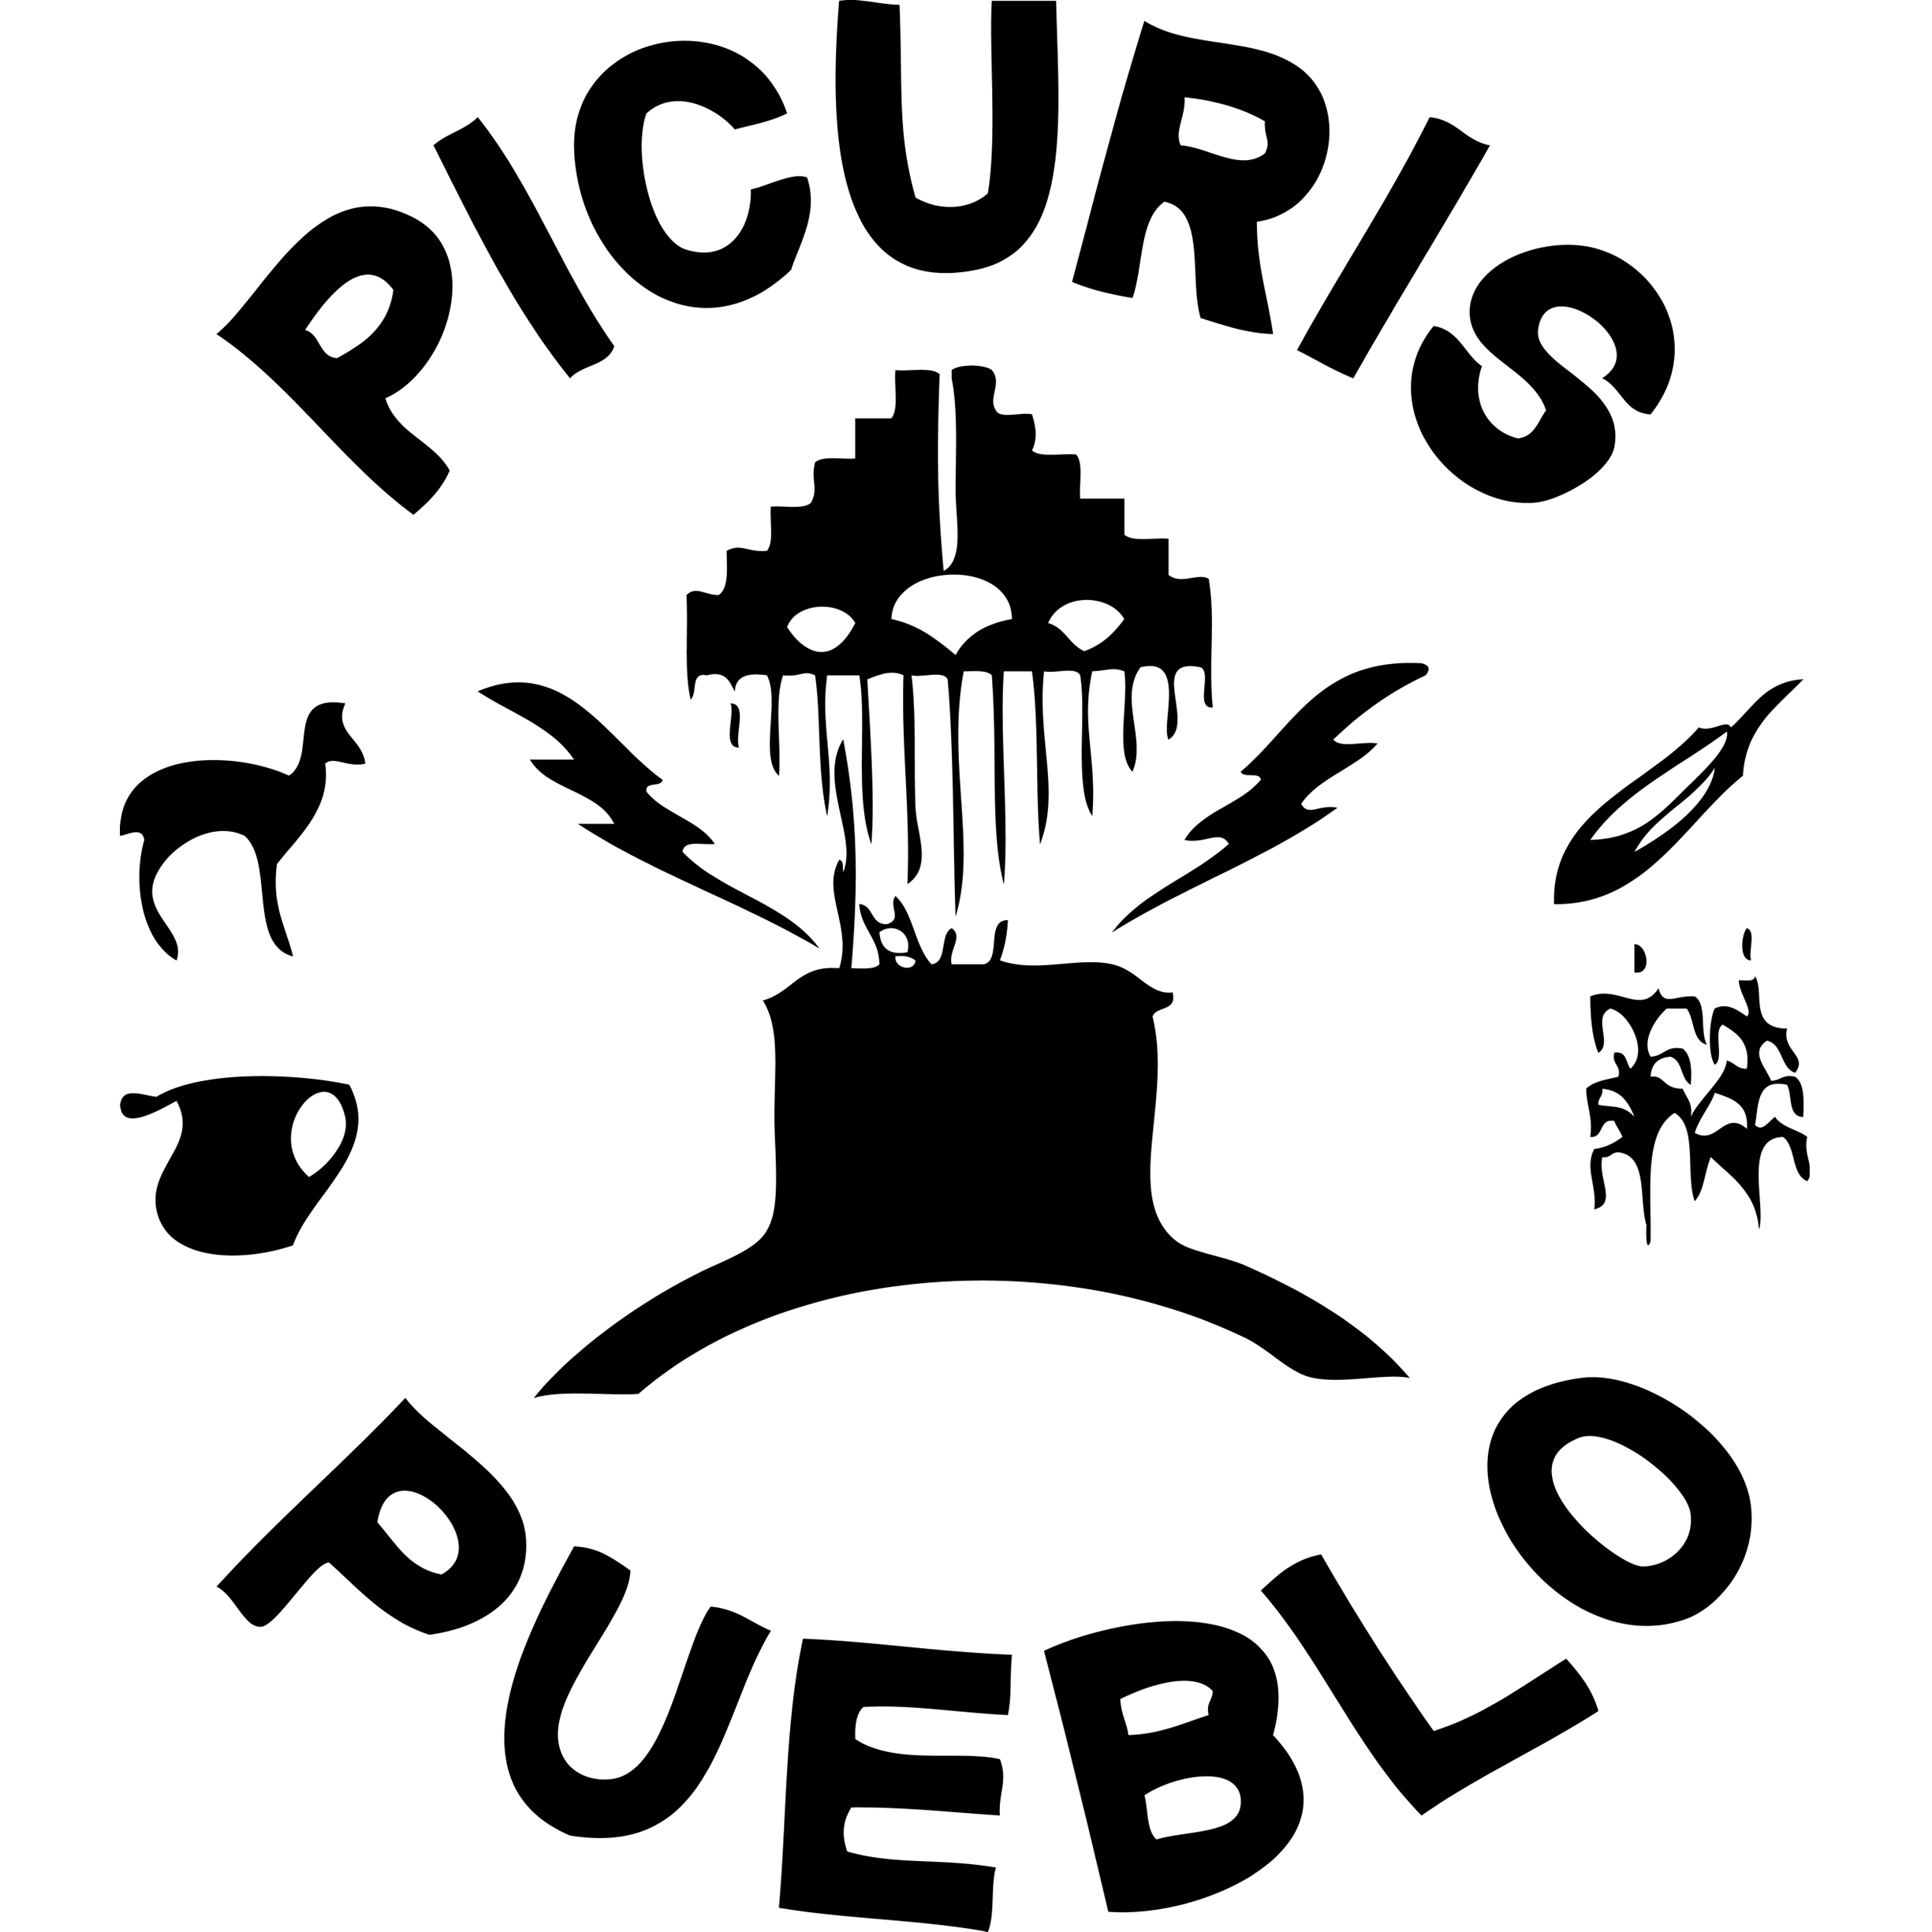 Picuris Pueblo logo